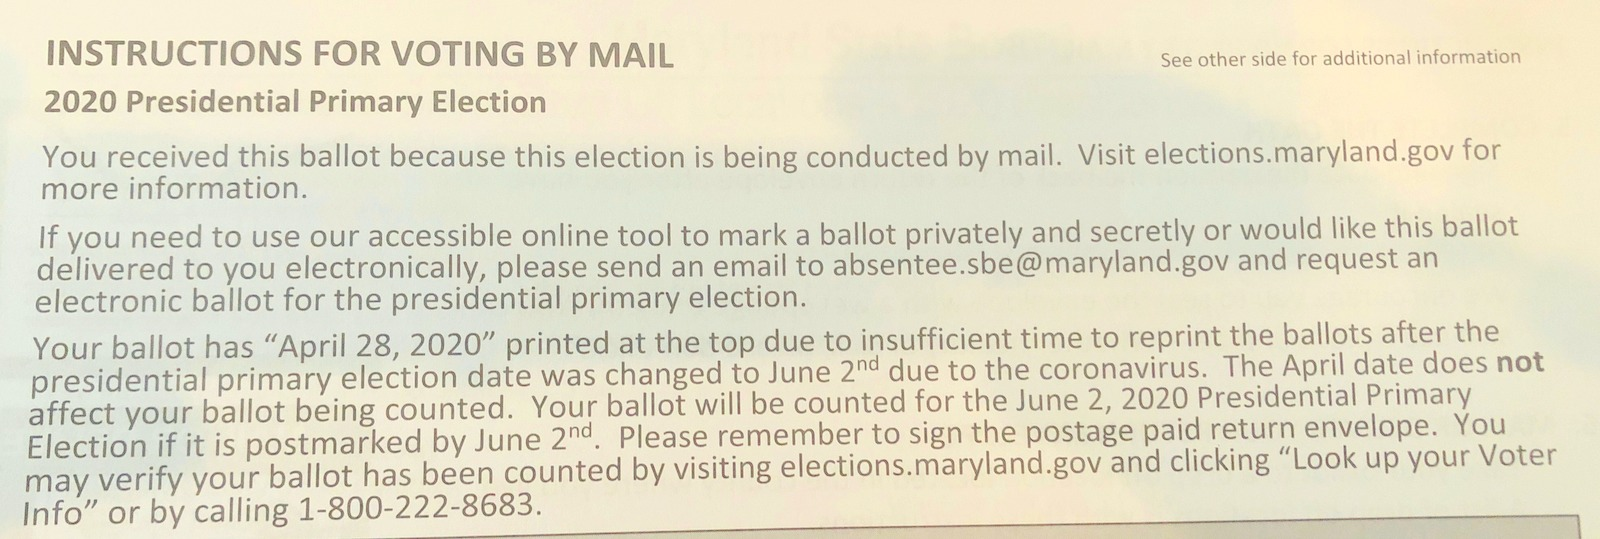 Instructions included with ballots for the 2020 primary advise voters to ignore the incorrect date printed on them. (Maryland State Board of Elections)